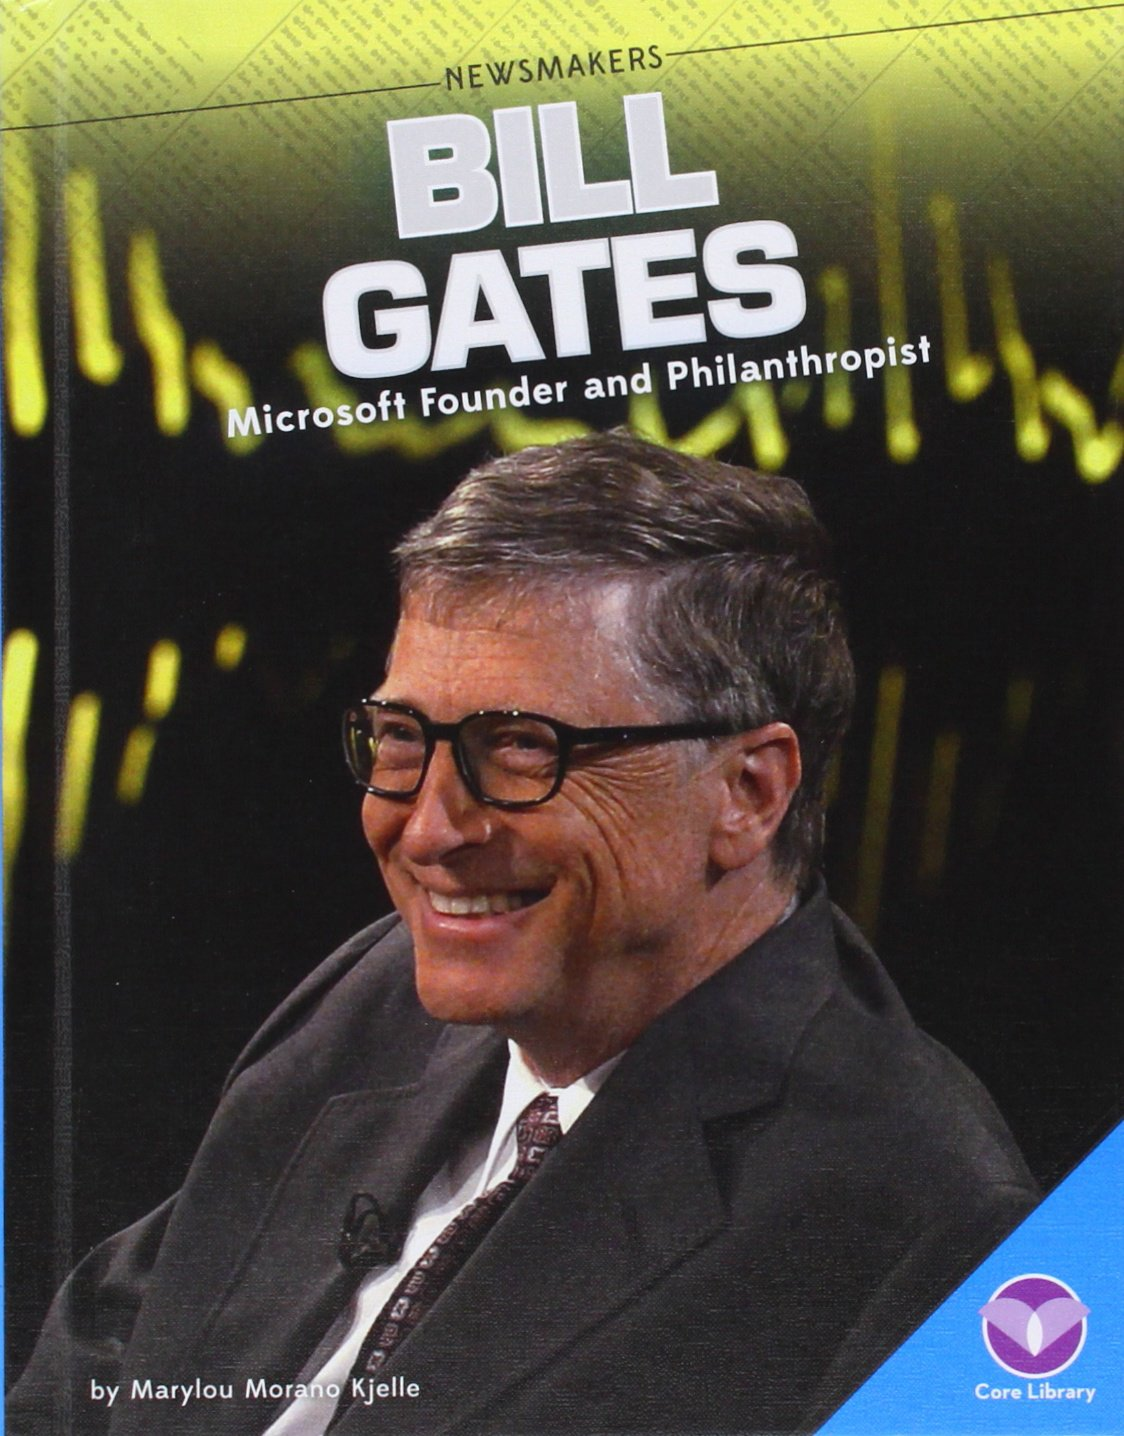 Bill Gates: Microsoft Founder and Philanthropist (Newsmakers)